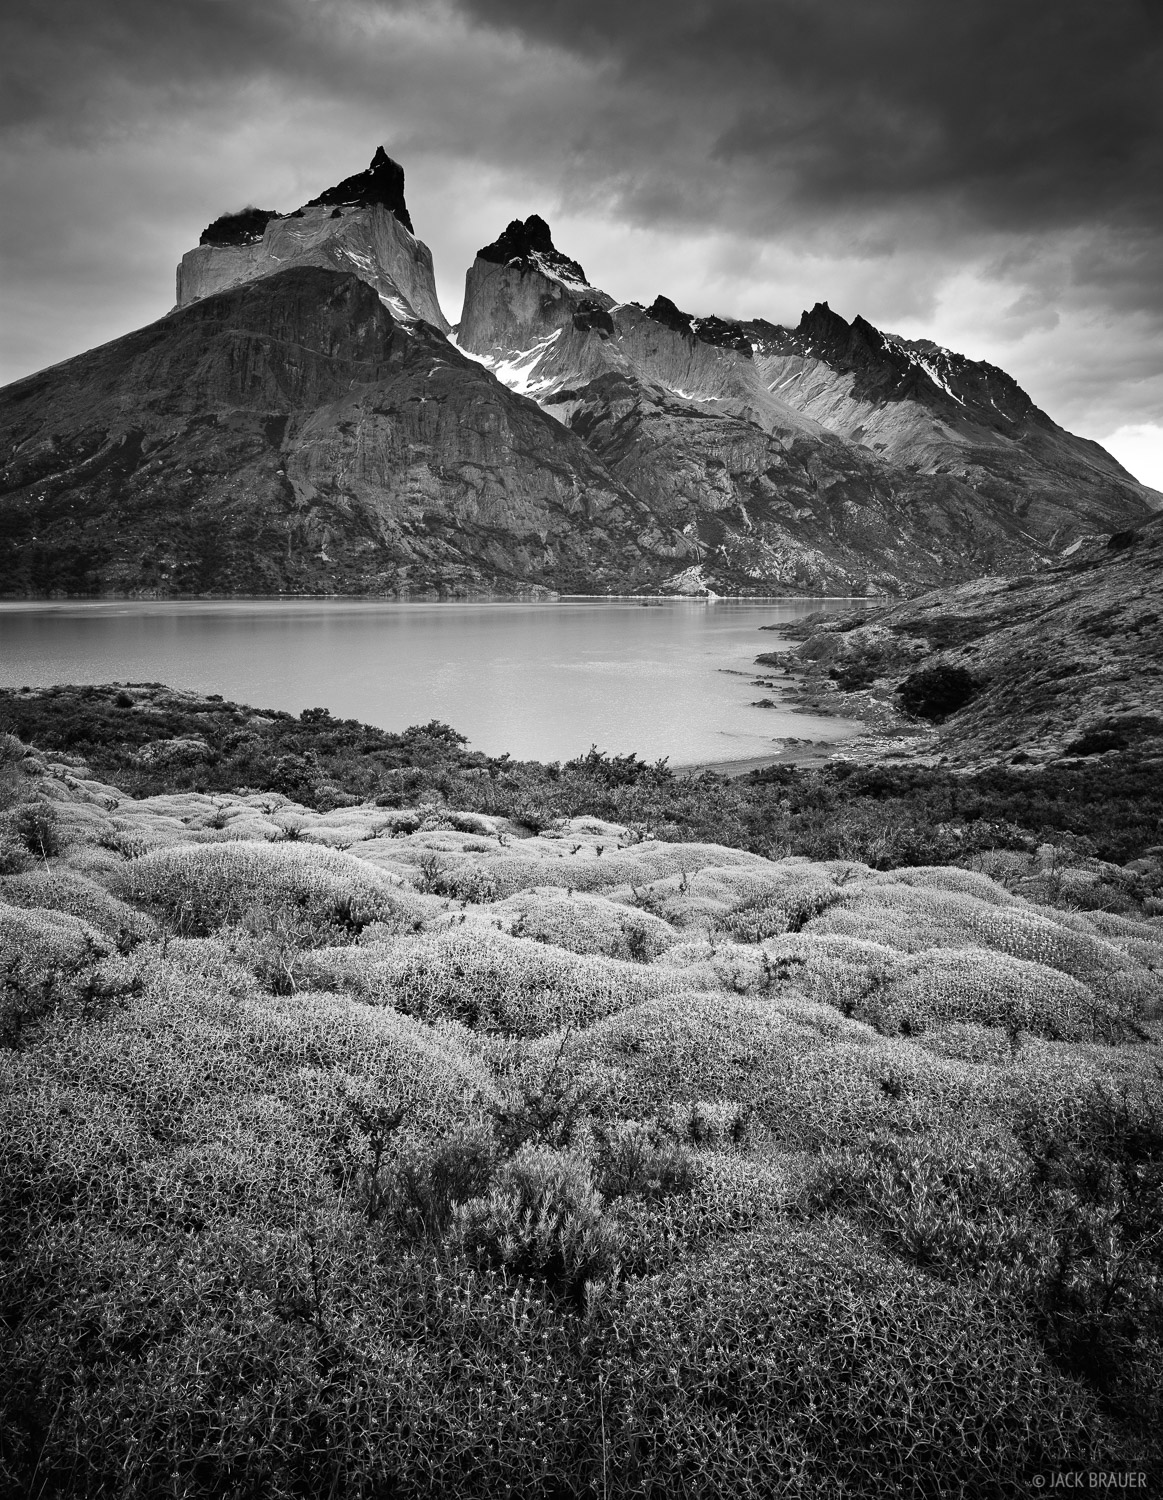 Cuernos del Paine rise more than 8,000 feet straight above Lago Nordenskjold in Torres del Paine National Park, Chile - December...